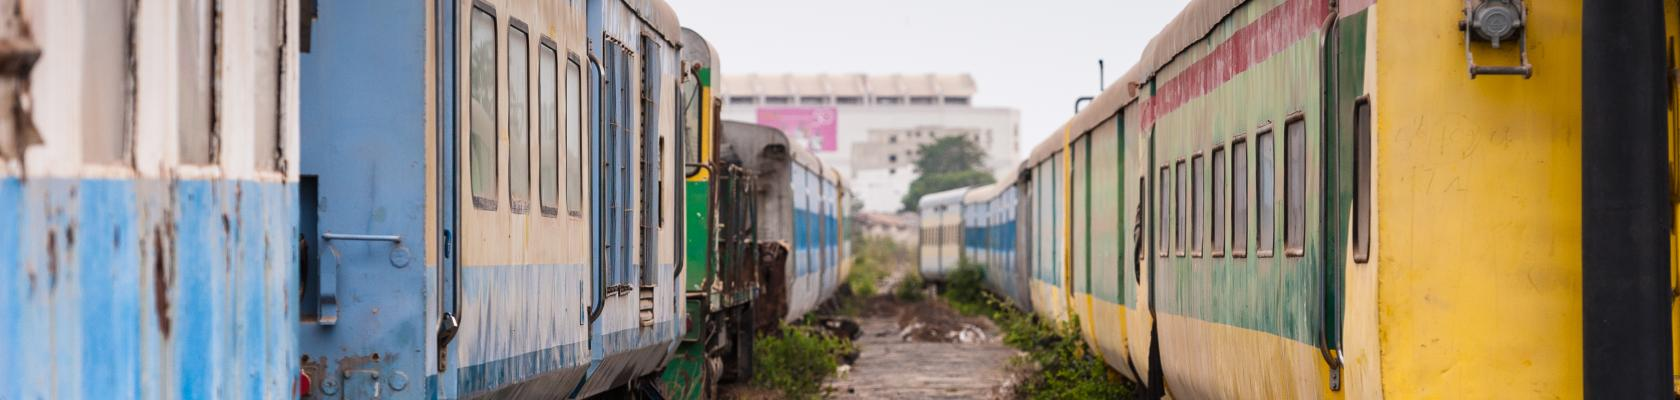 old trains in Dakar, Sénégal